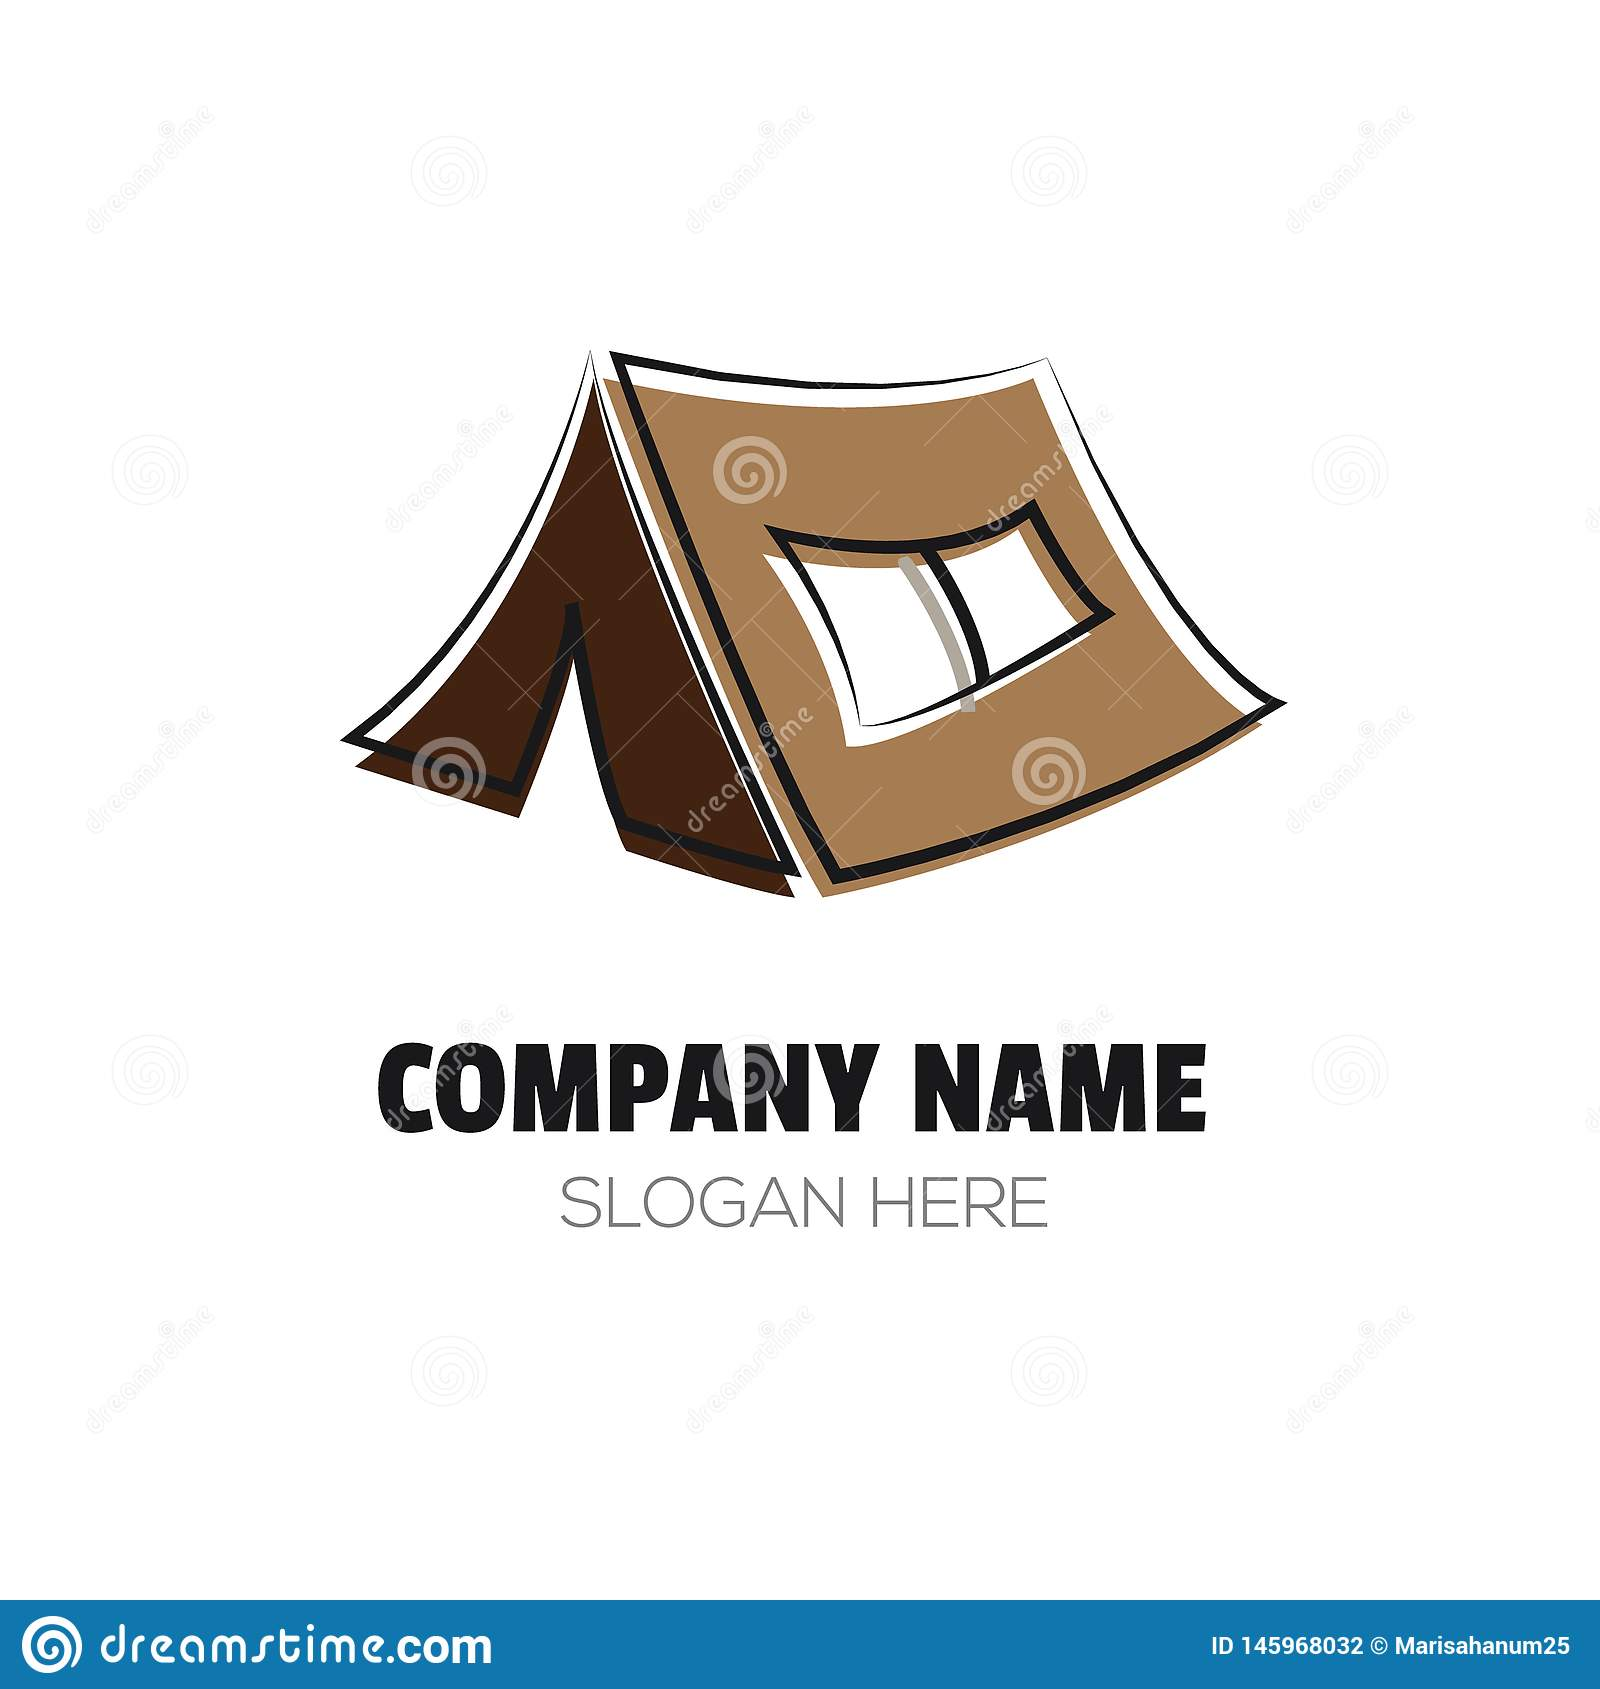 Clear and Simple Camping Tent Logo